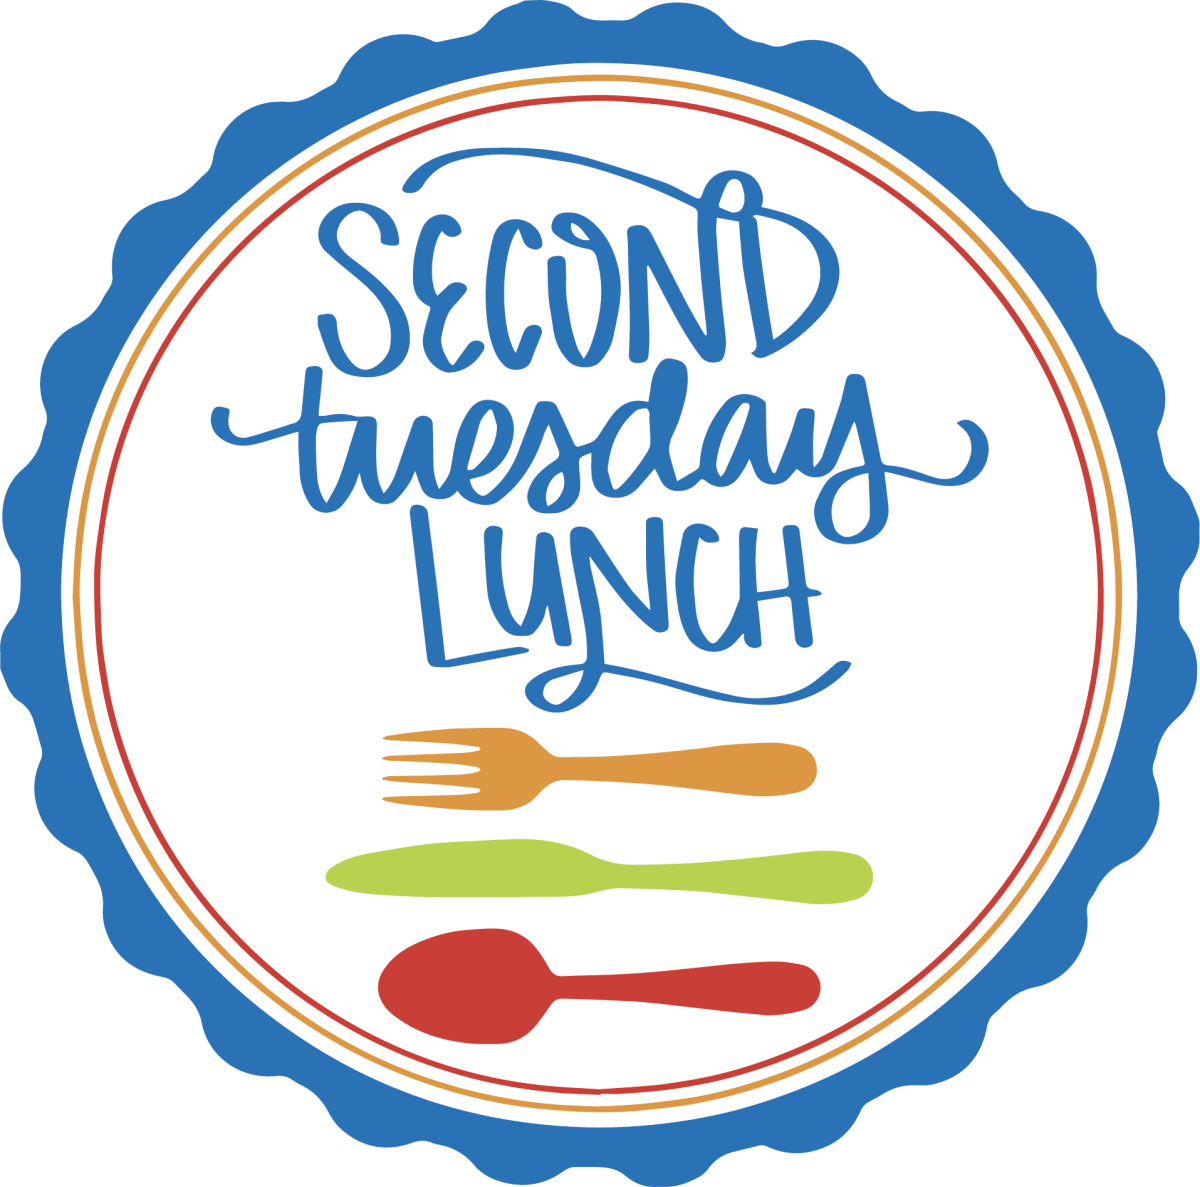 Retiree Lunch (Second Tuesday Lunch)